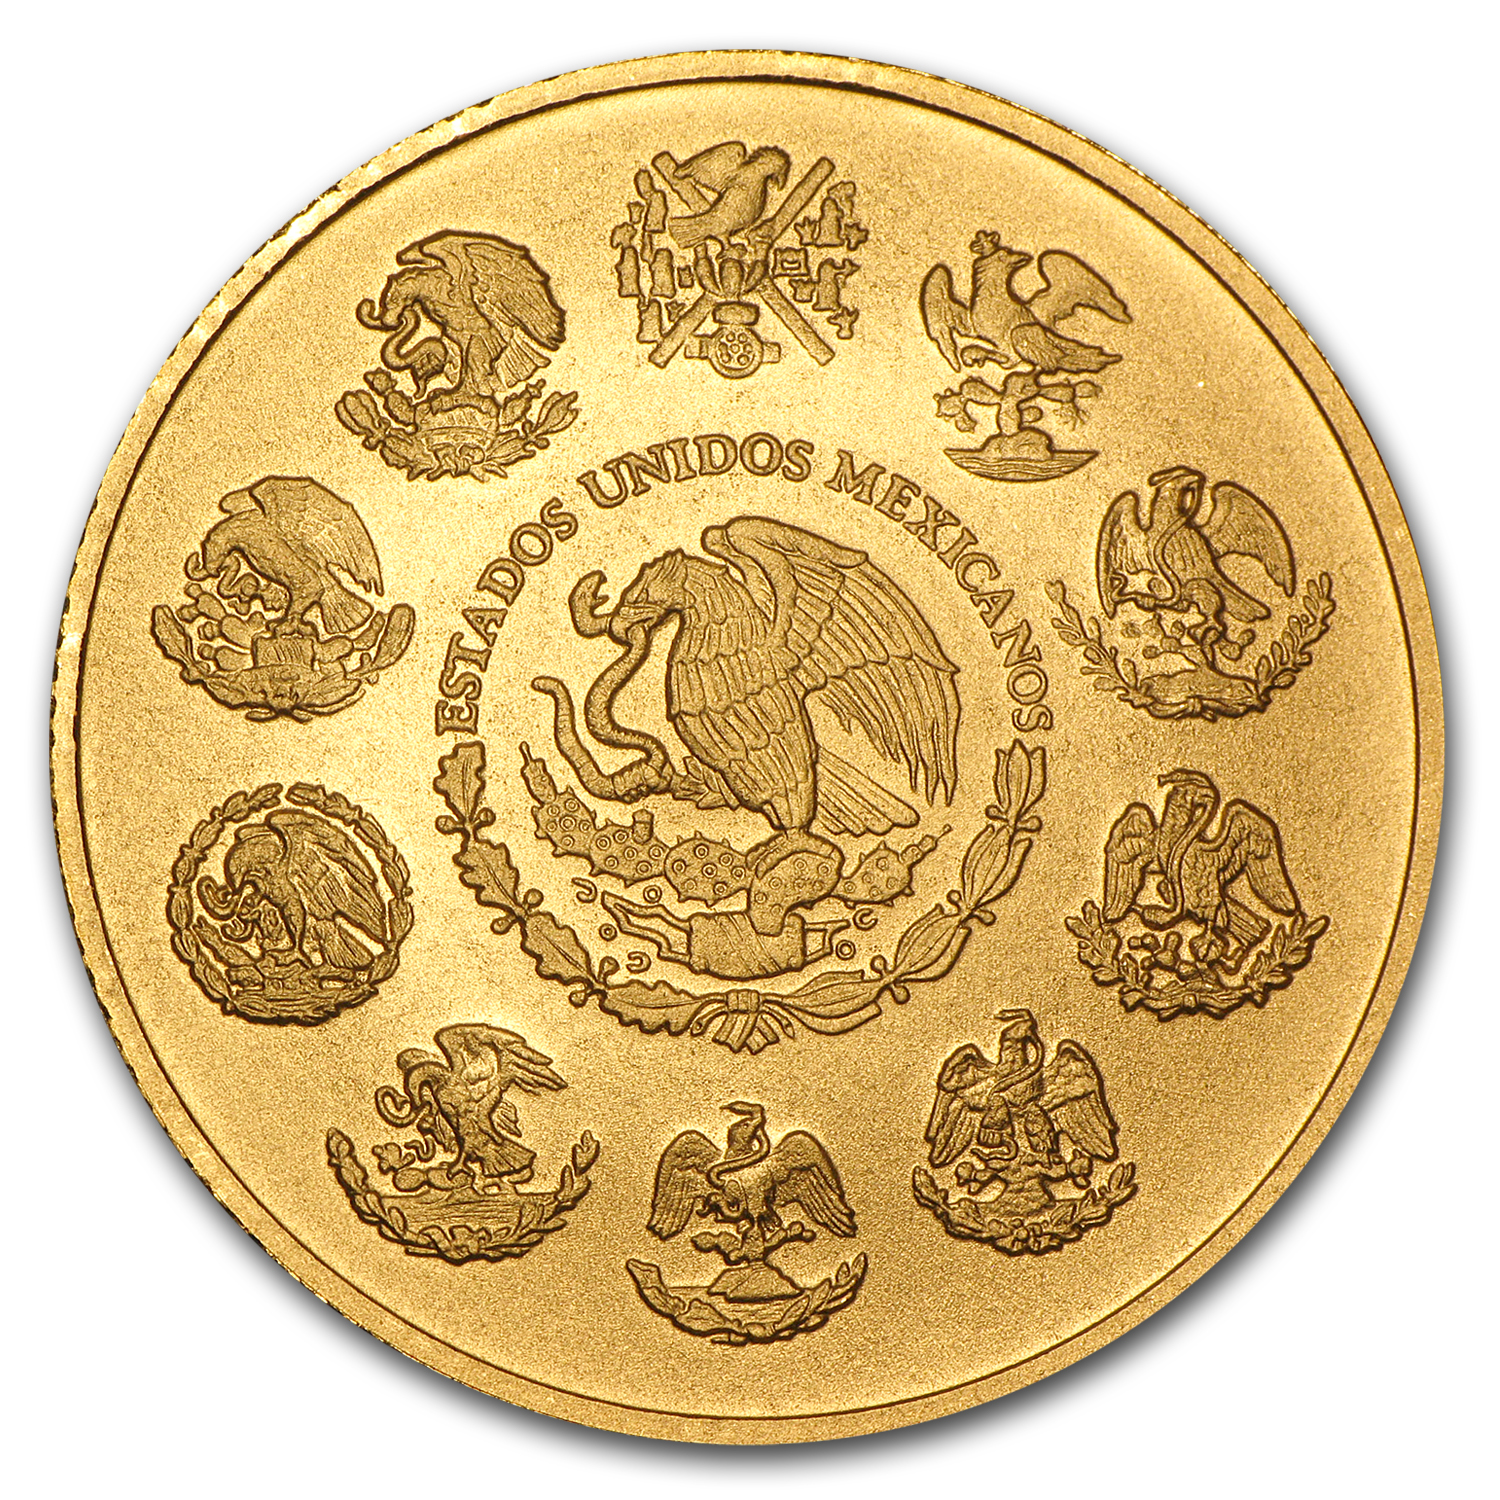 2013 1 oz Gold Mexican Libertad (Brilliant Uncirculated)